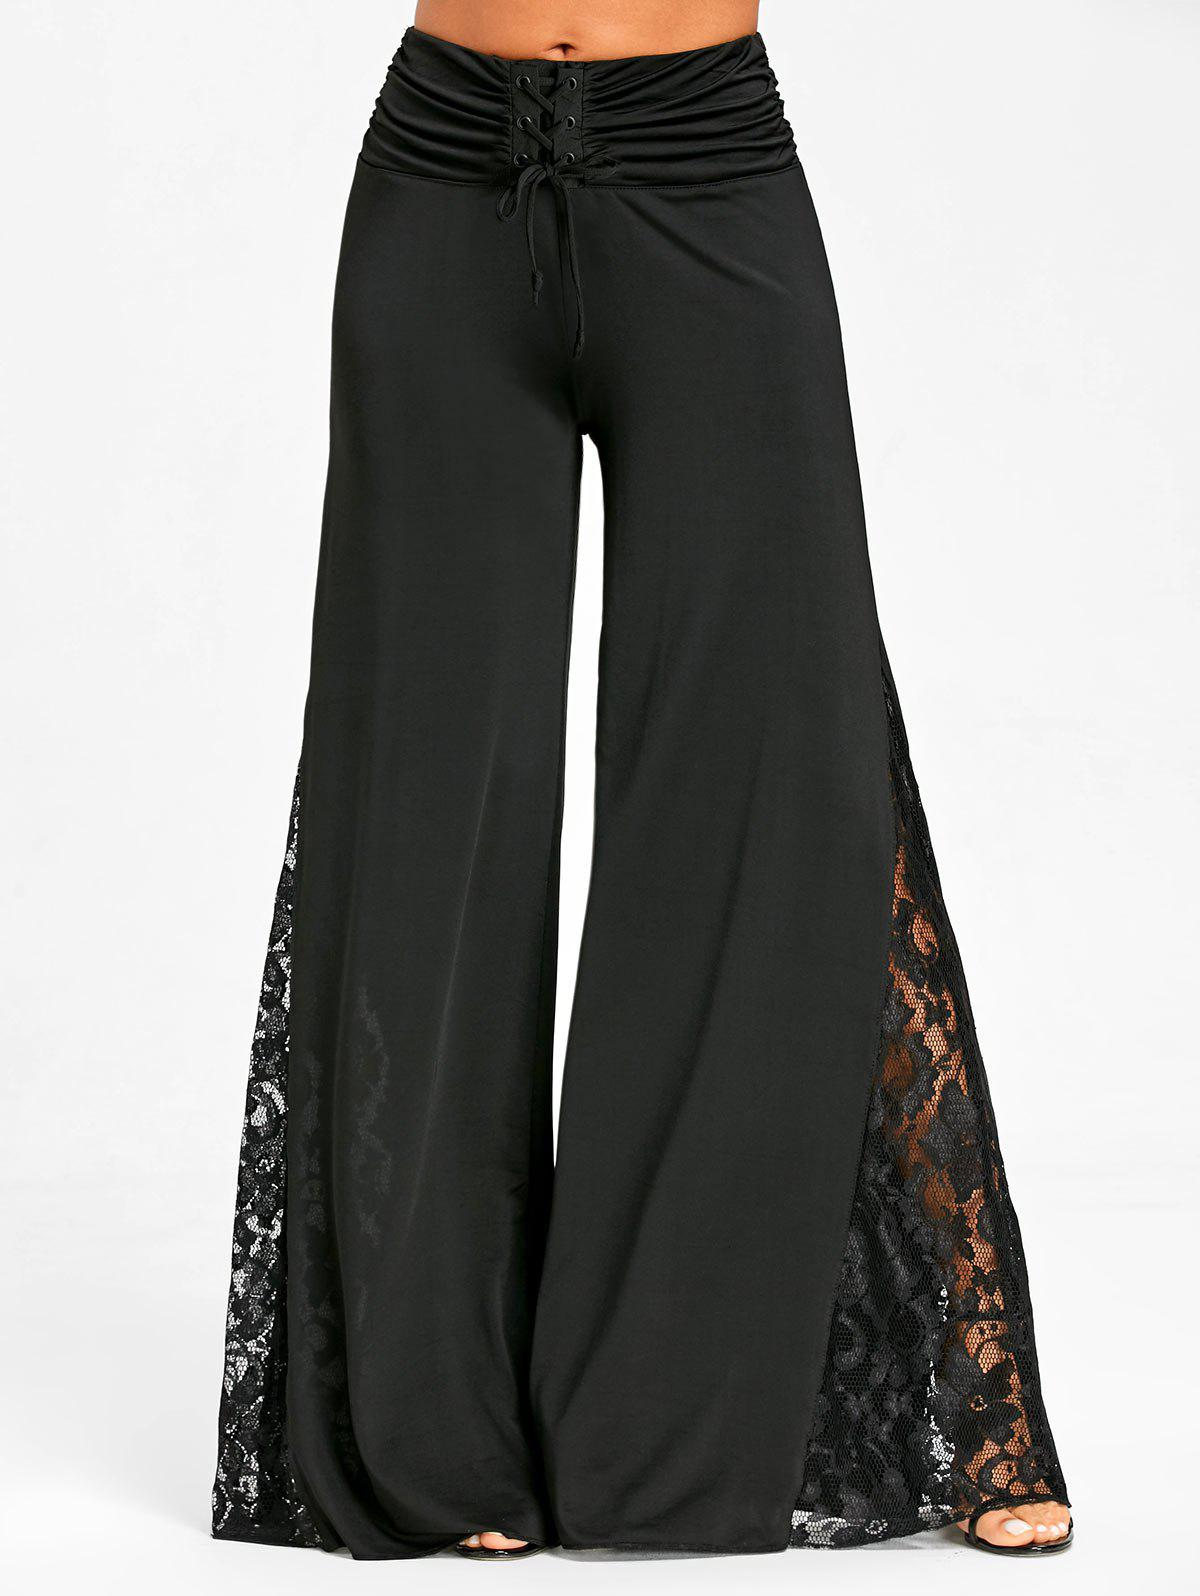 Hot Lace Trim Palazzo Pants